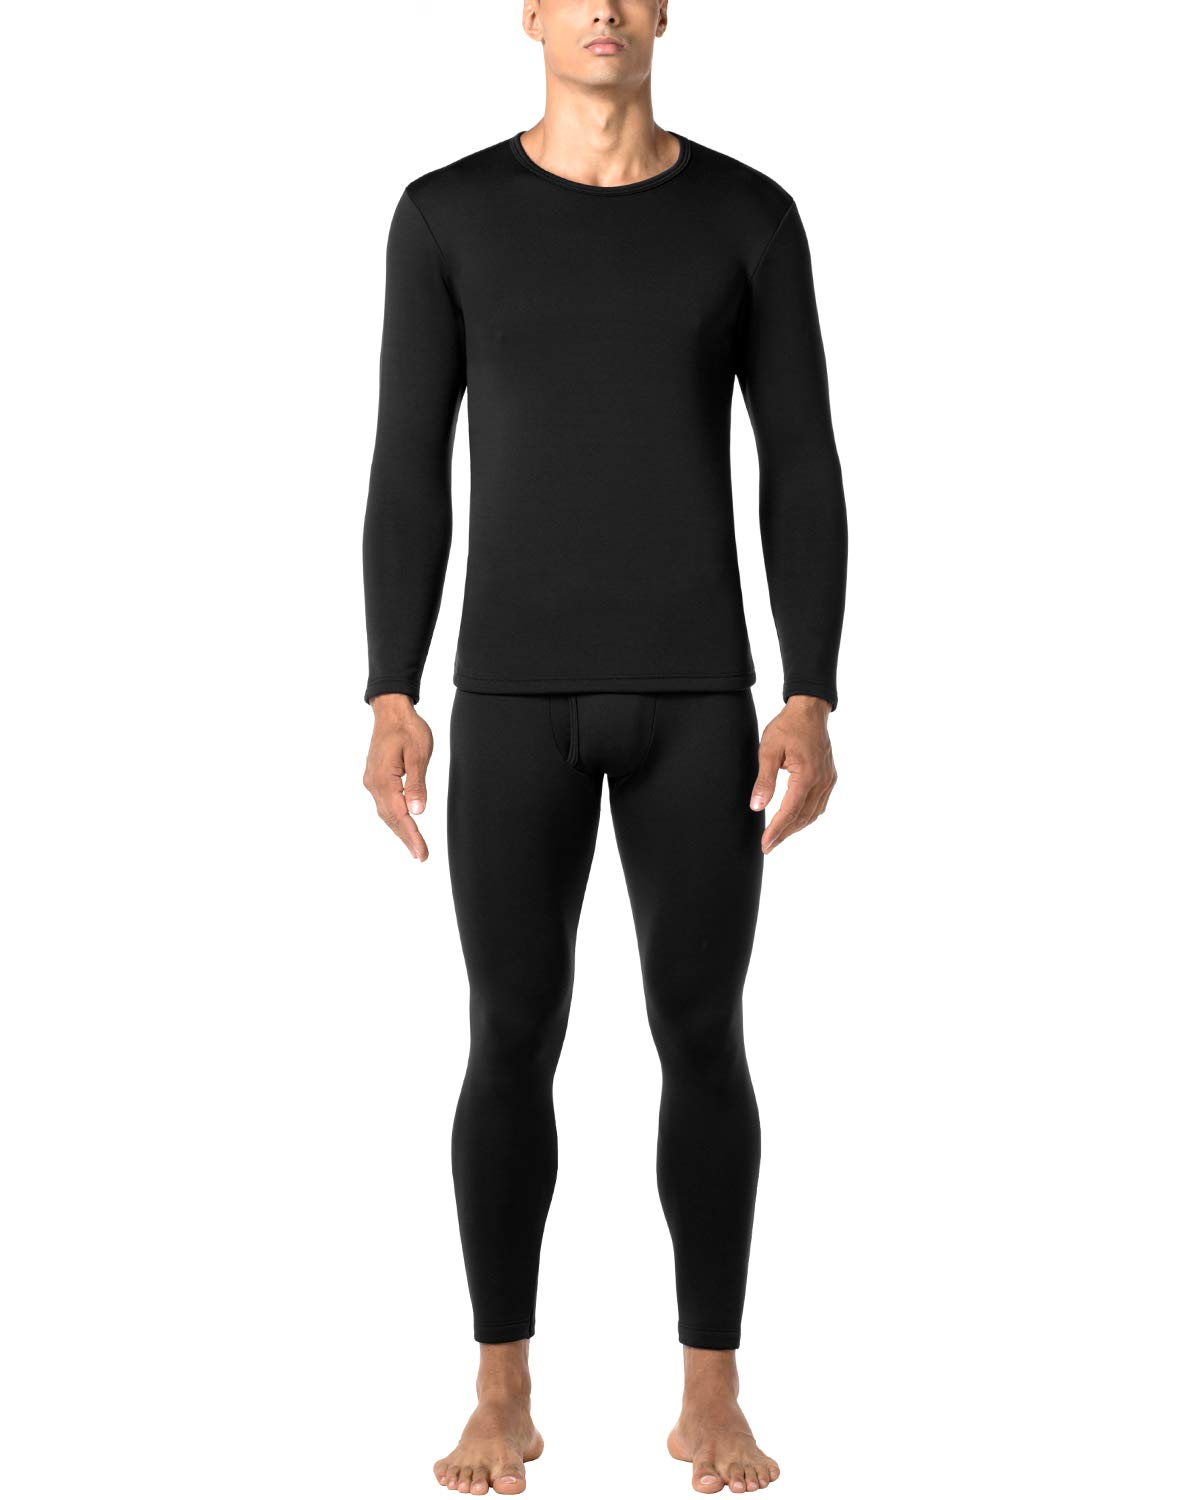 LAPASA Men's Heavyweight Thermal Underwear Long John Set Fleece Lined Base Layer Top and Bottom M24 Black by LAPASA